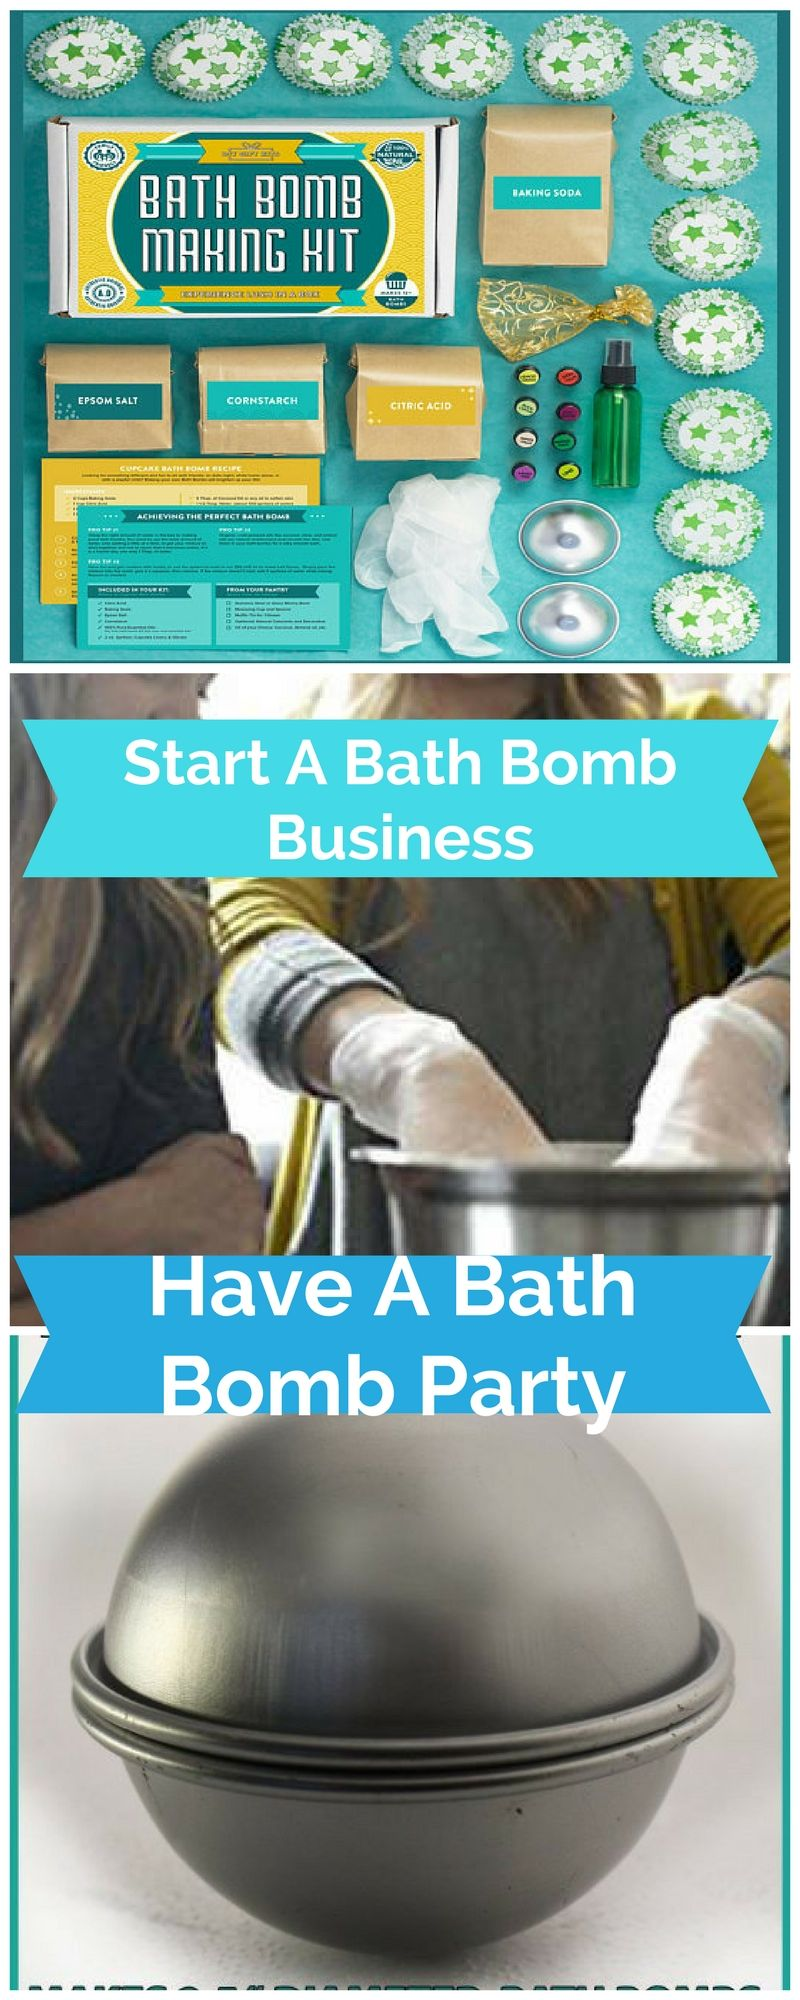 DELUXE- Bath Bomb Making Kit with 100/% Pure Therapeutic Grade Essential Oils, Makes 12 DIY Lush Cupcake Mold Bath Bombs Gift Box Included